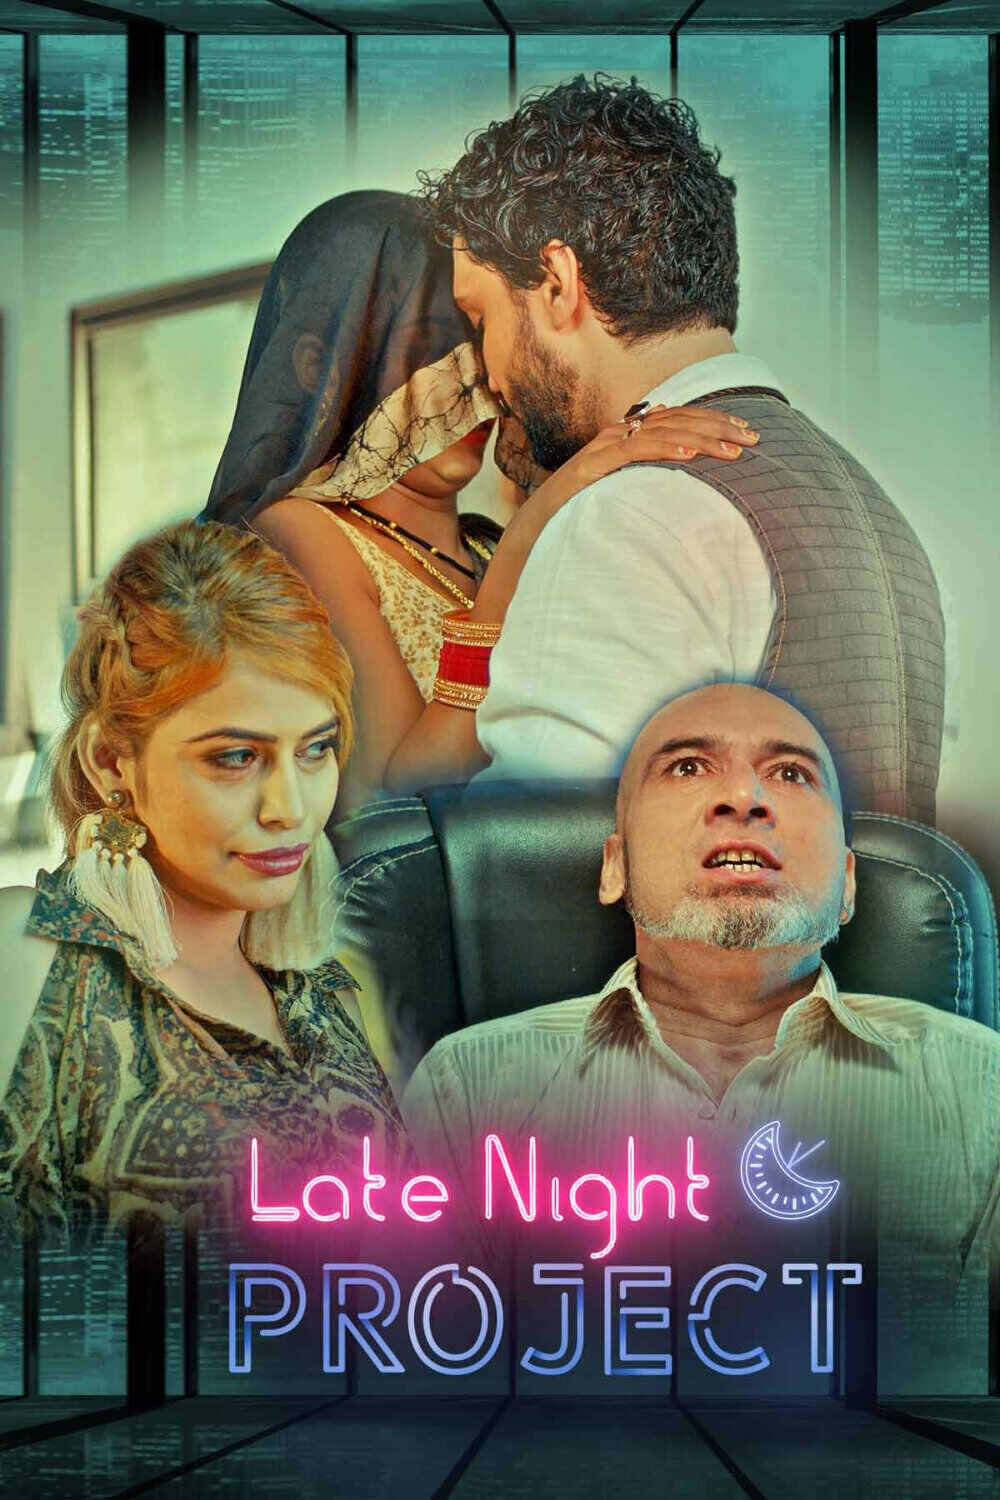 Late Night Project Part 2 2020 S01 KooKu Hindi Complete Web Series 720p HDRip 350MB Download